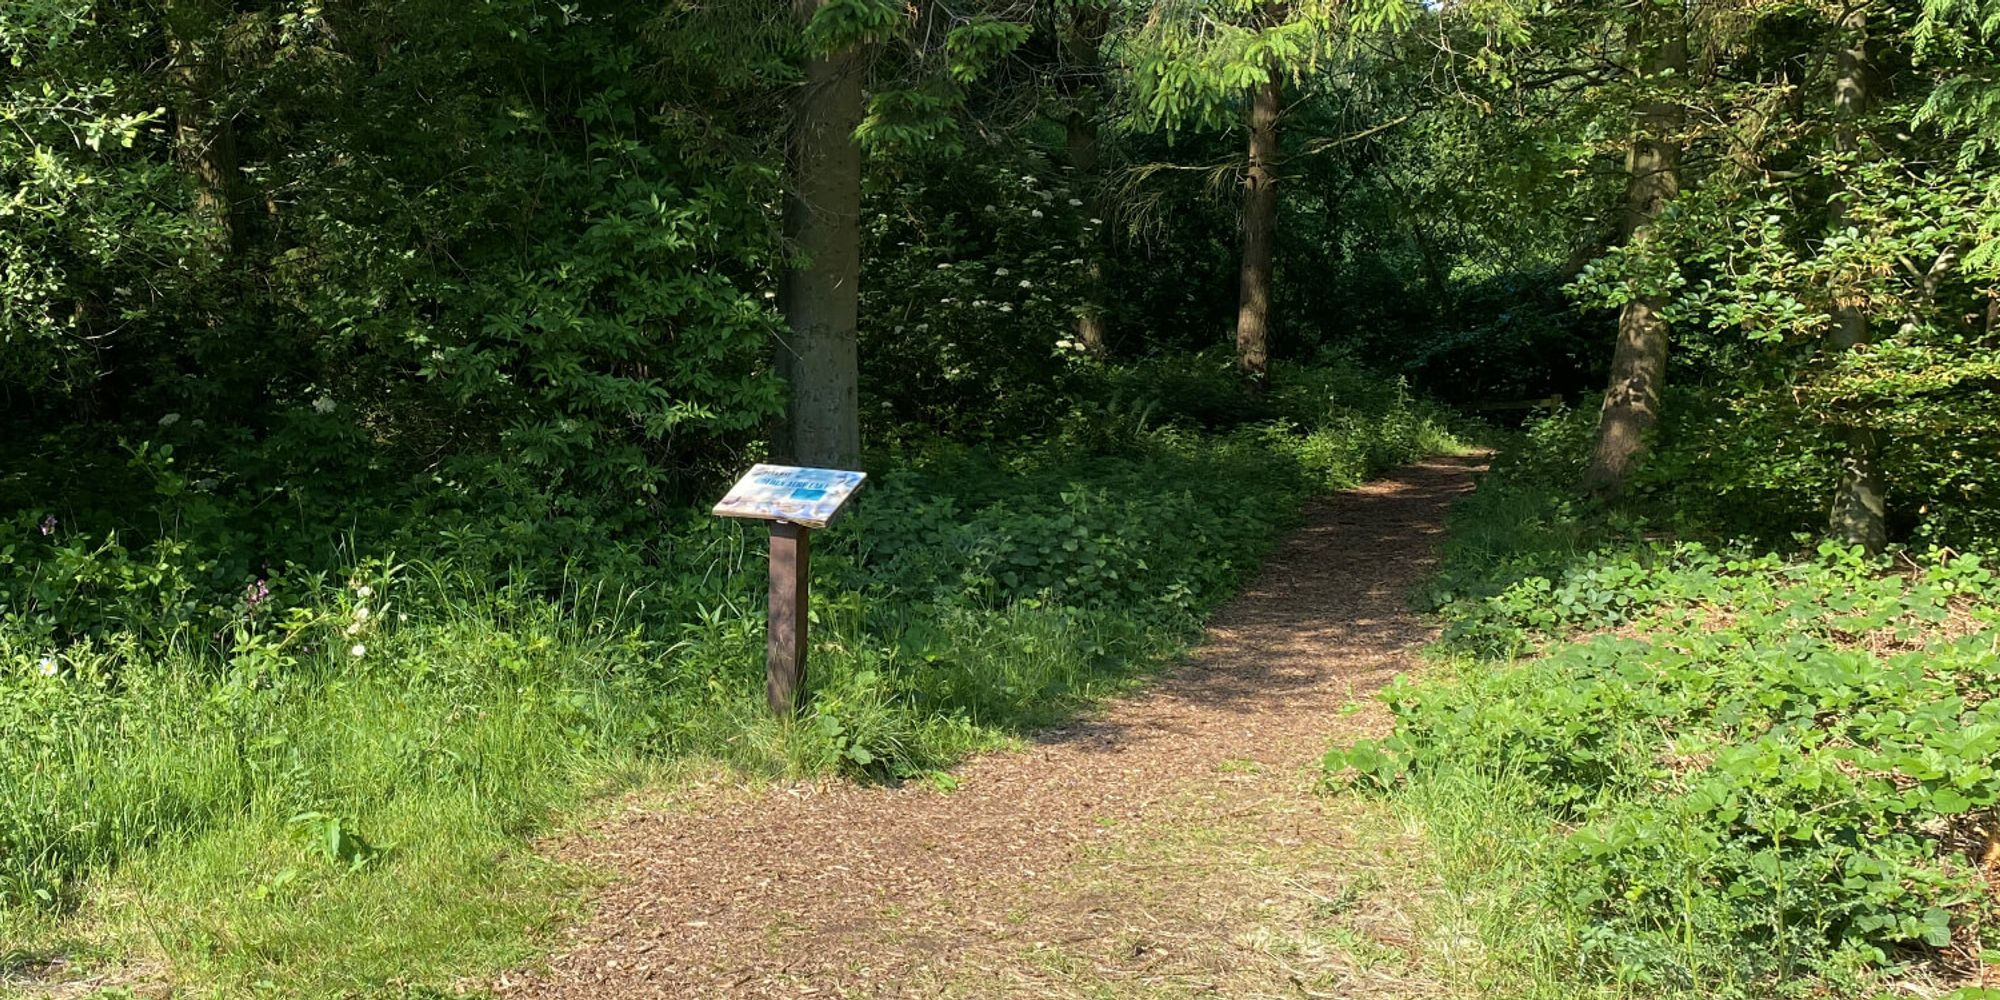 A sign by a path at Golden Acre Park